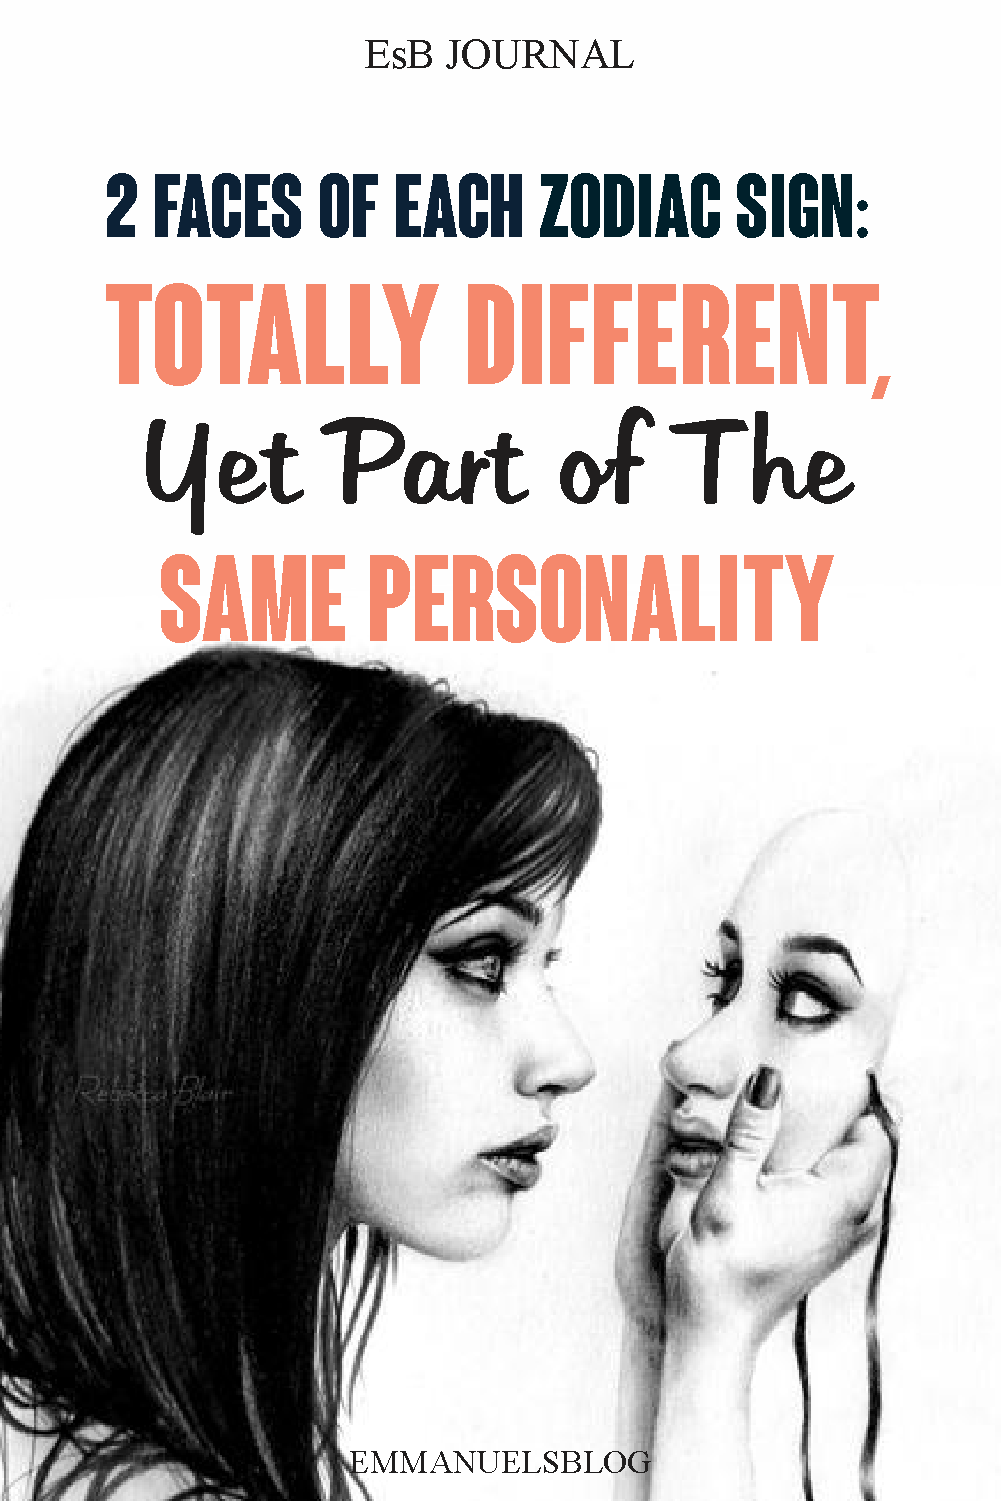 2 Faces Of Each Zodiac Sign: Totally Different, Yet Part of The Same Persona